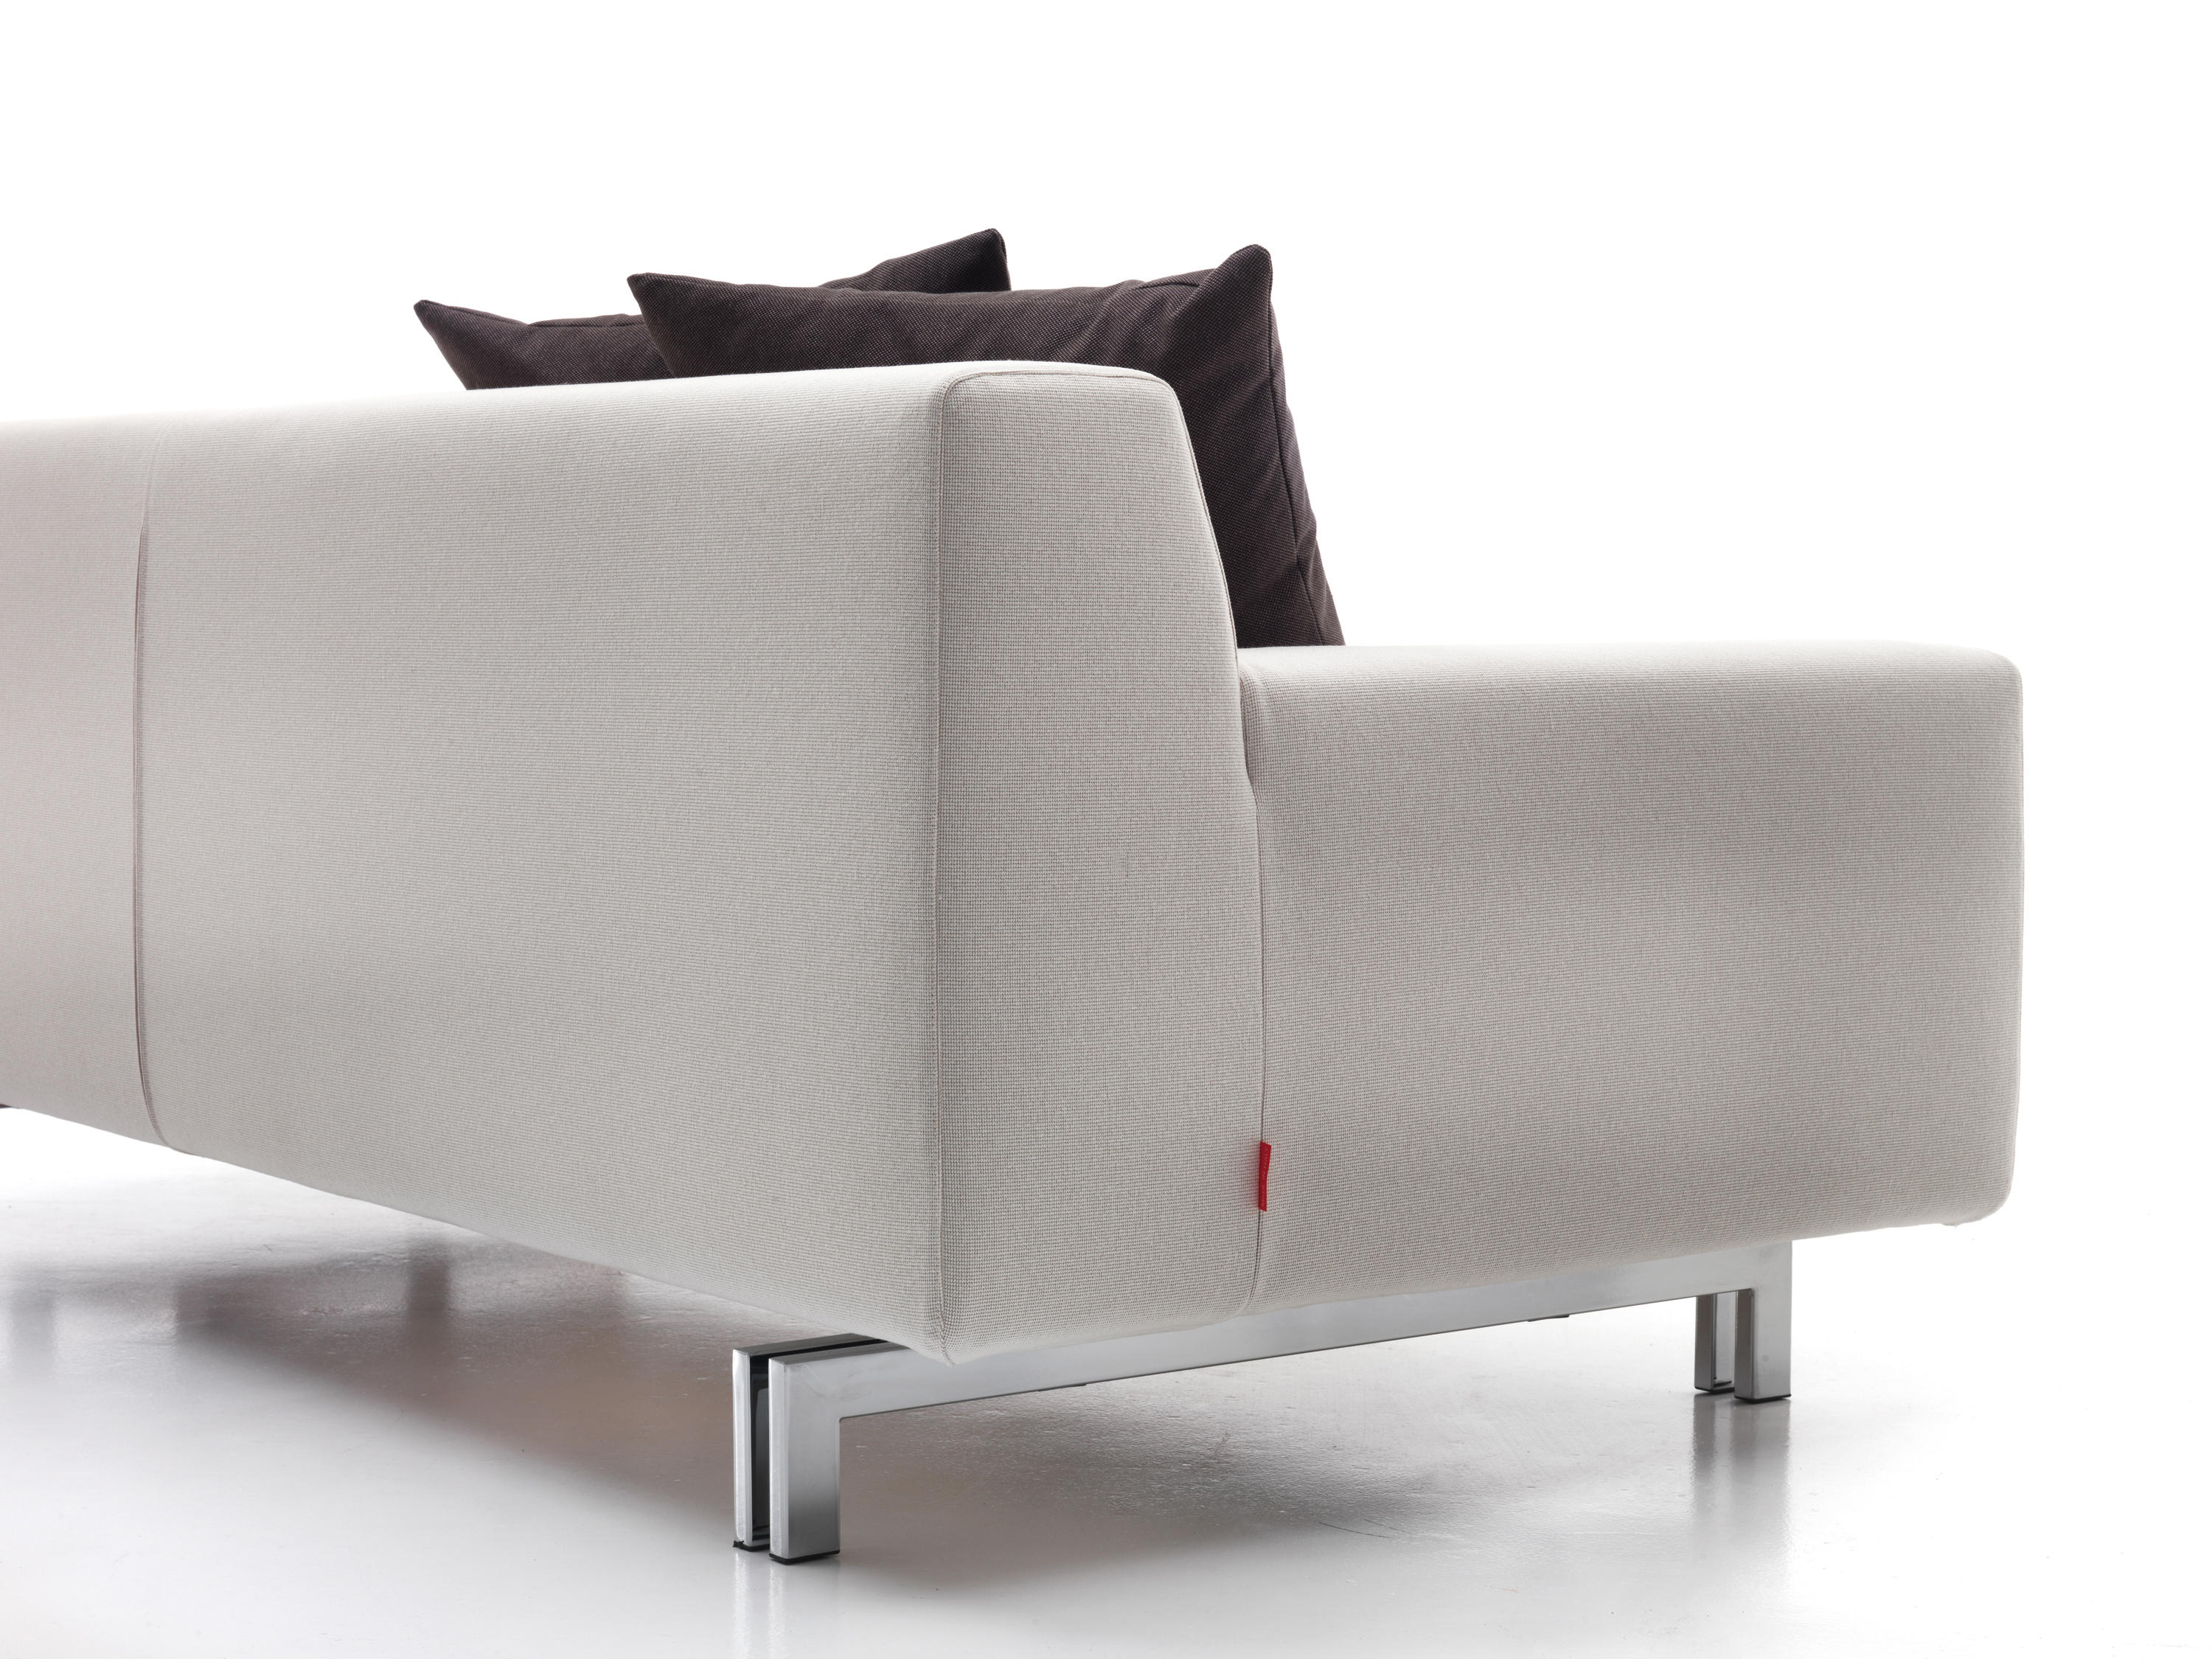 Alexander 3 Seater Sofa By Mussi Italy Sofas